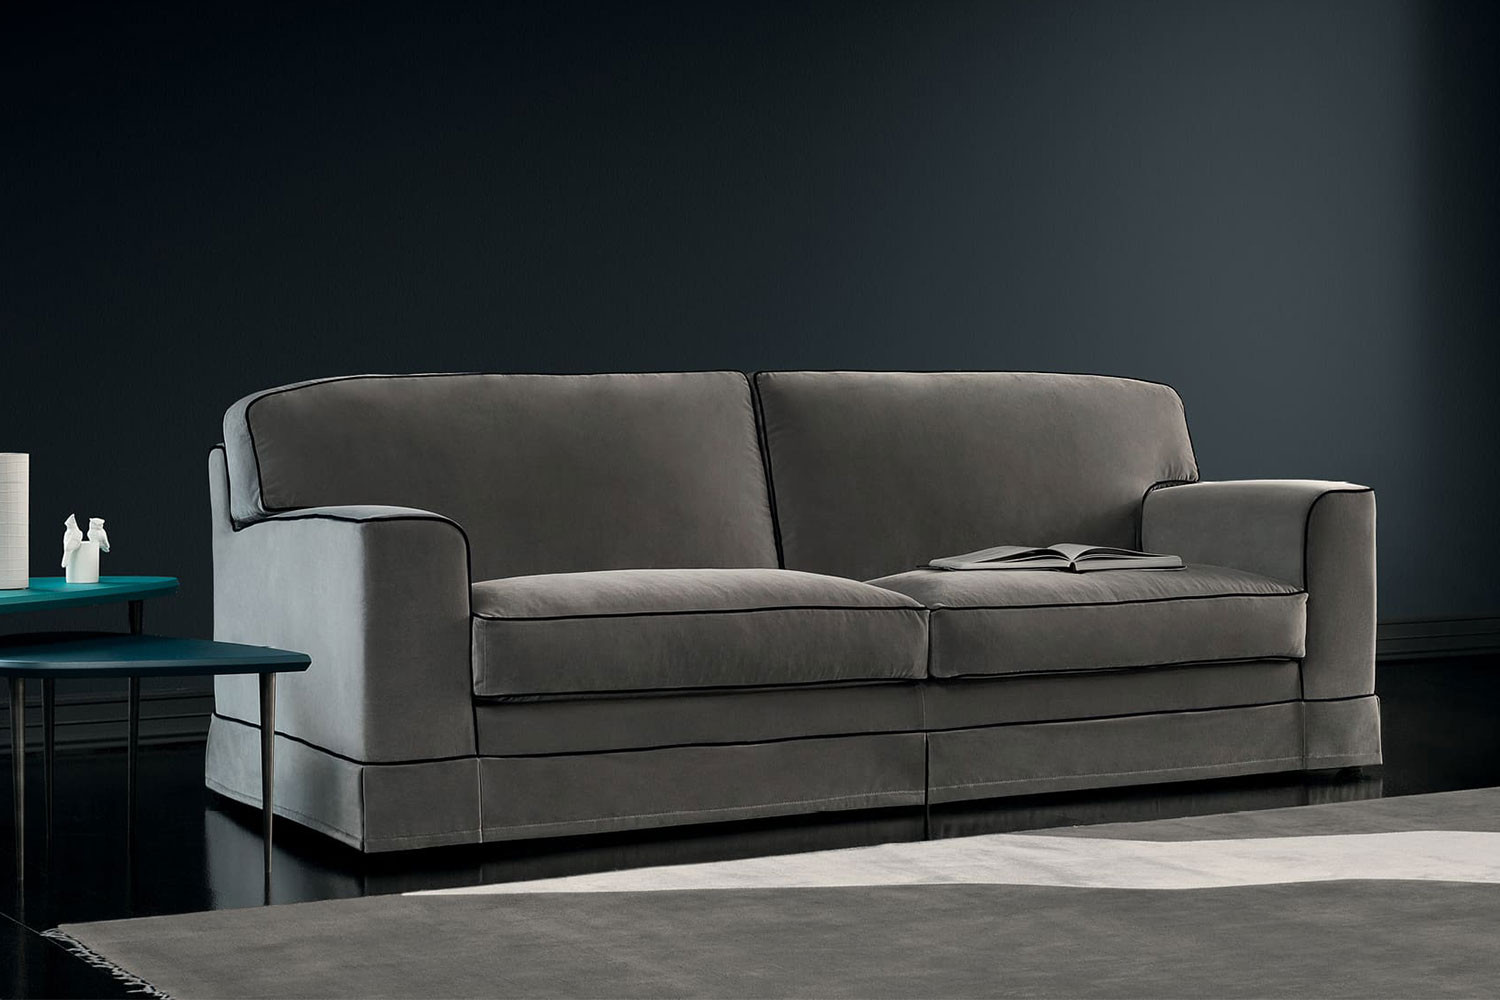 Kick pleat skirt sofa, comes as a 2, 3 or 4 seater beautifully ornate with piped edges